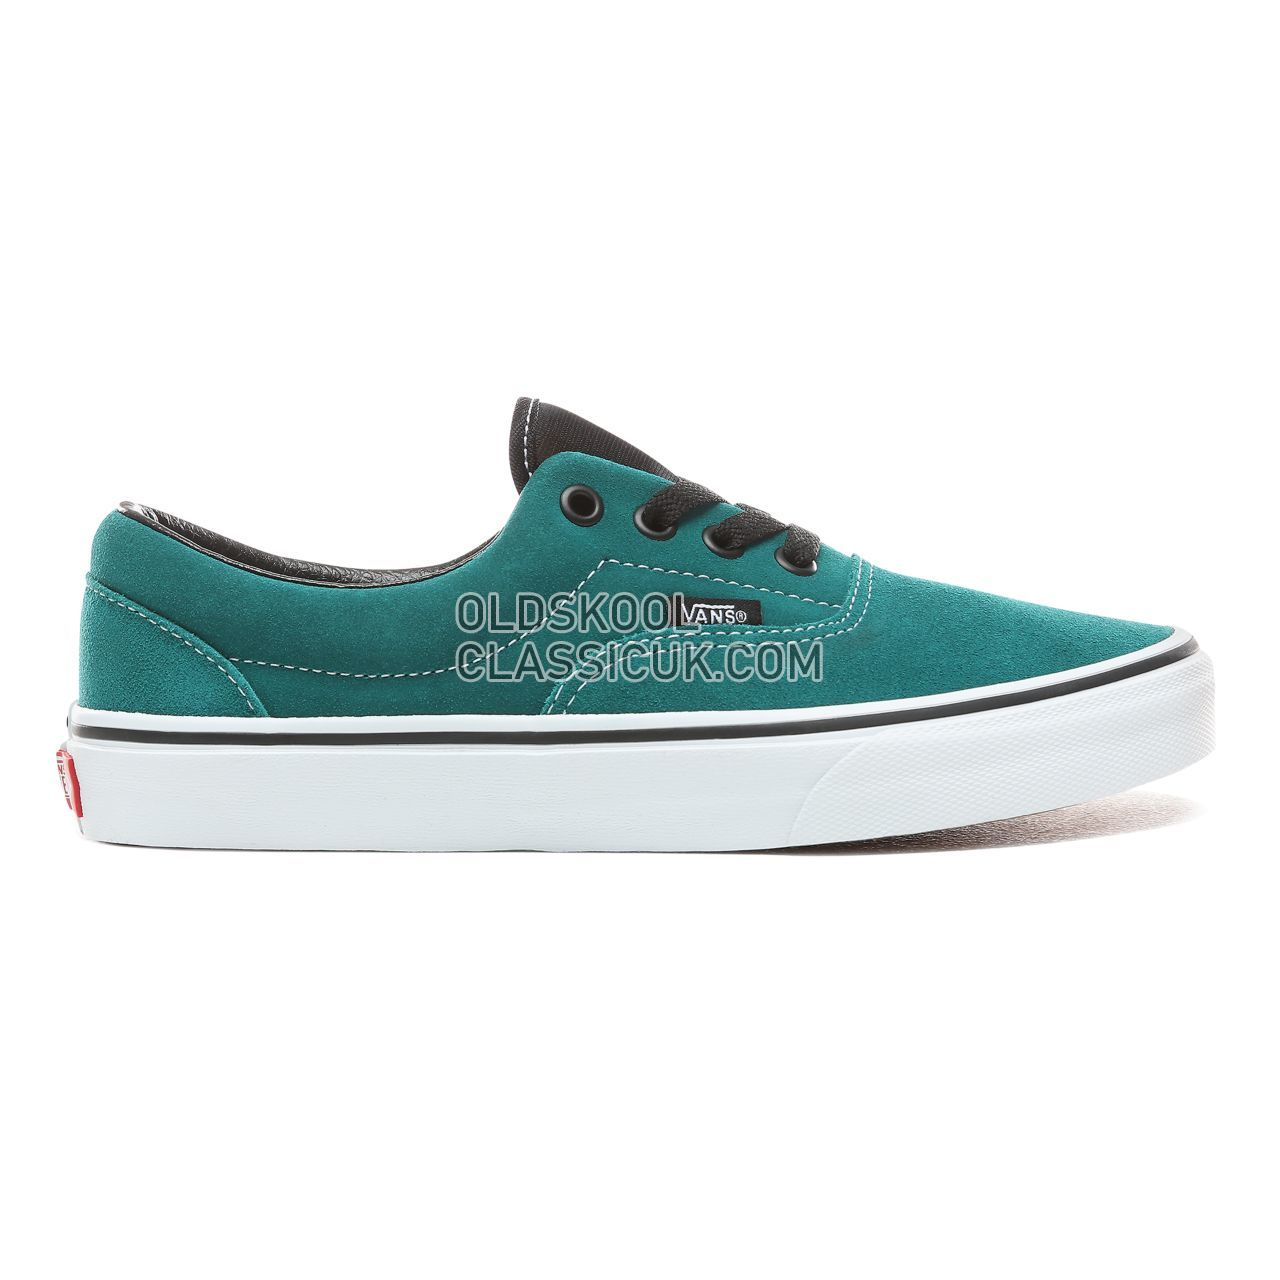 Vans California Native Era Sneakers Womens (California Native) Quetzal Green/True White VN0A38FRVON Shoes